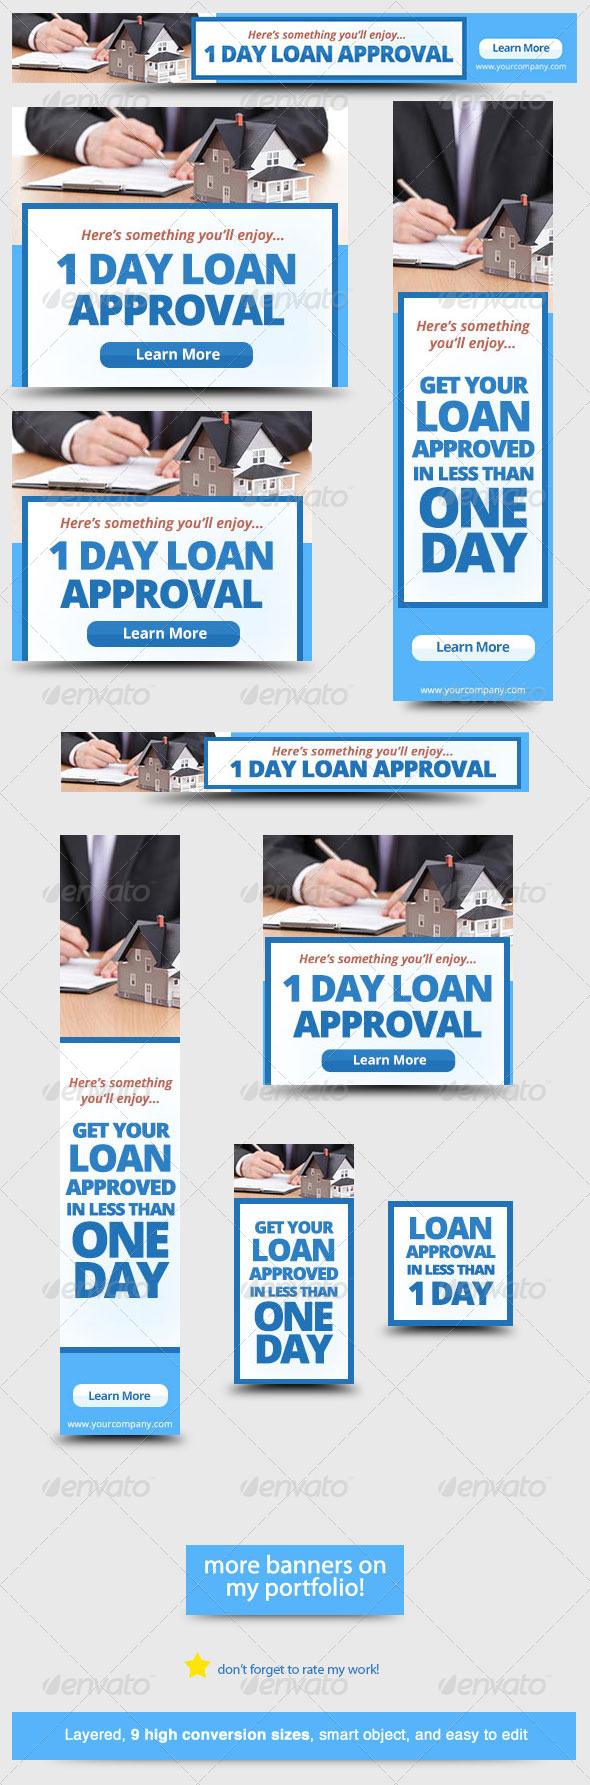 Home loan web banner design template by admiraladictus graphicriver home loan web banner design template banners ads web elements maxwellsz